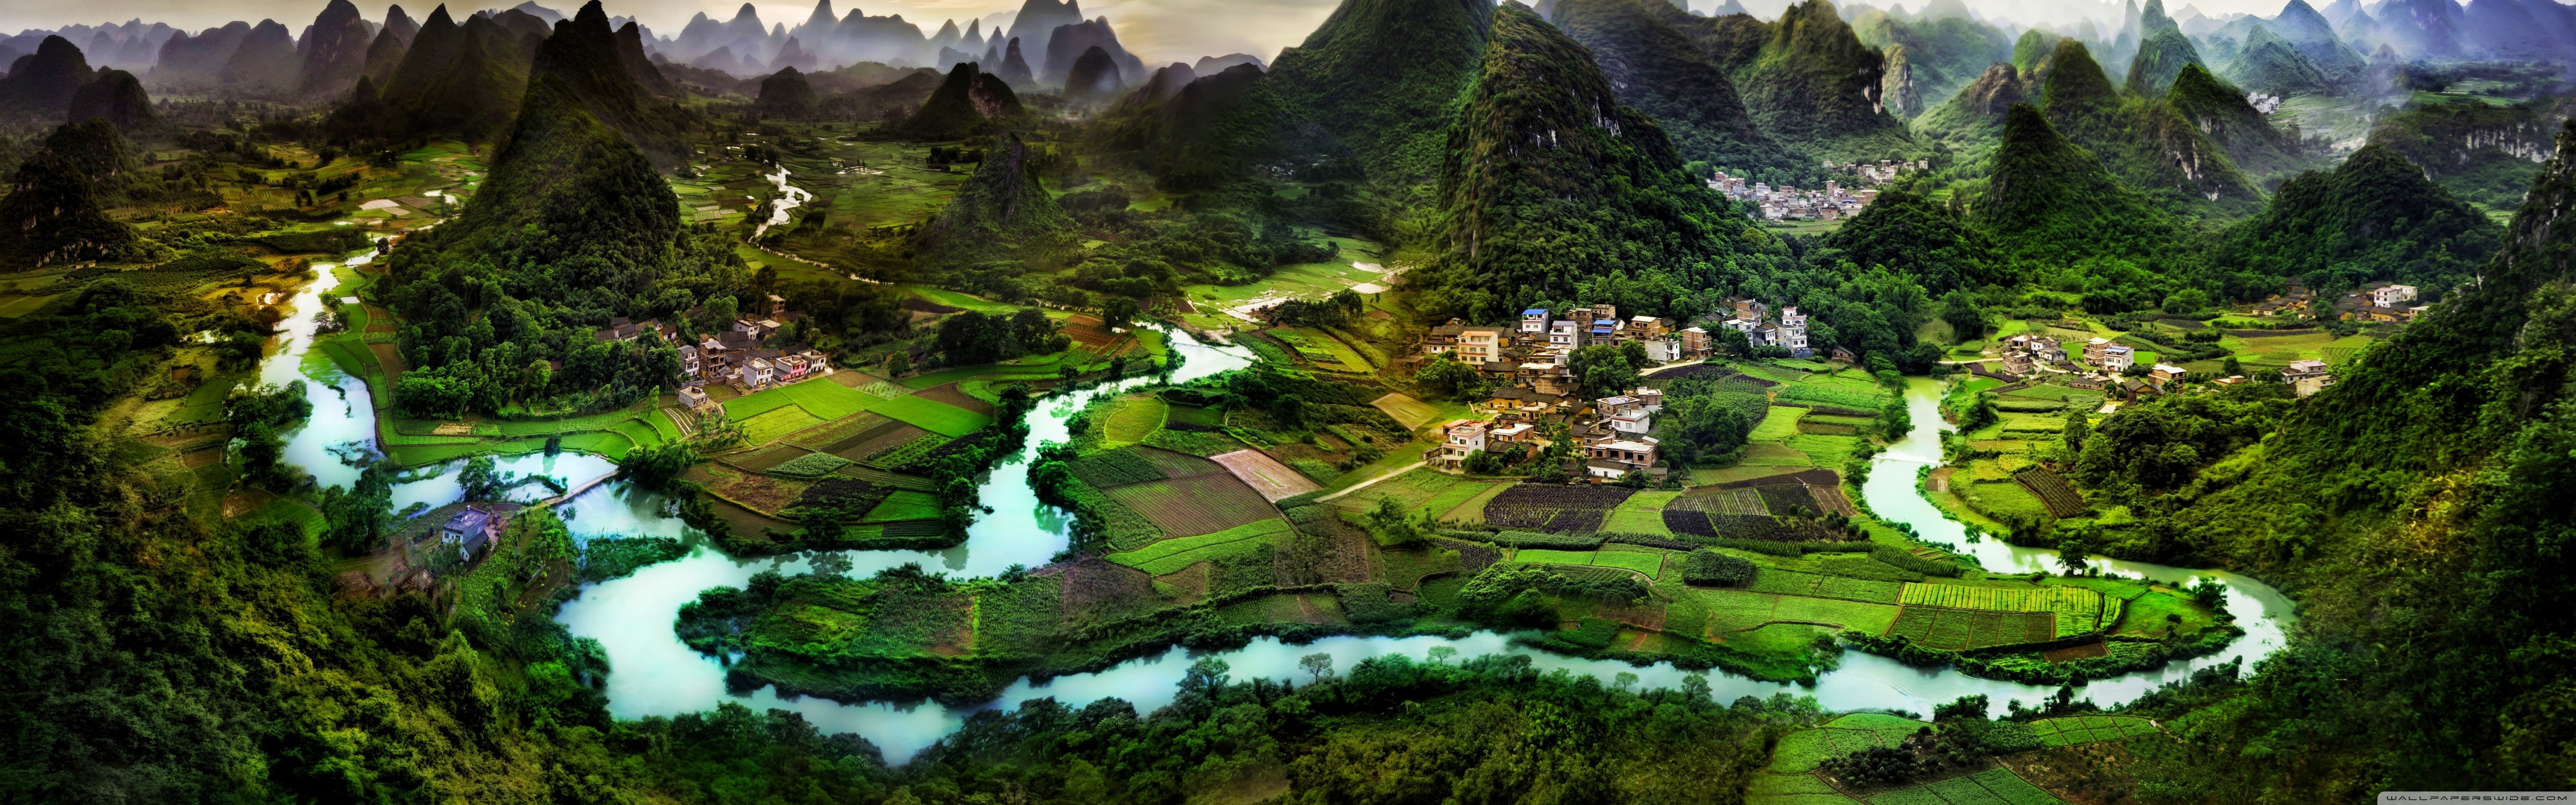 Guilin China 4K HD Desktop Wallpaper for 4K Ultra HD TV Wide 5120x1600